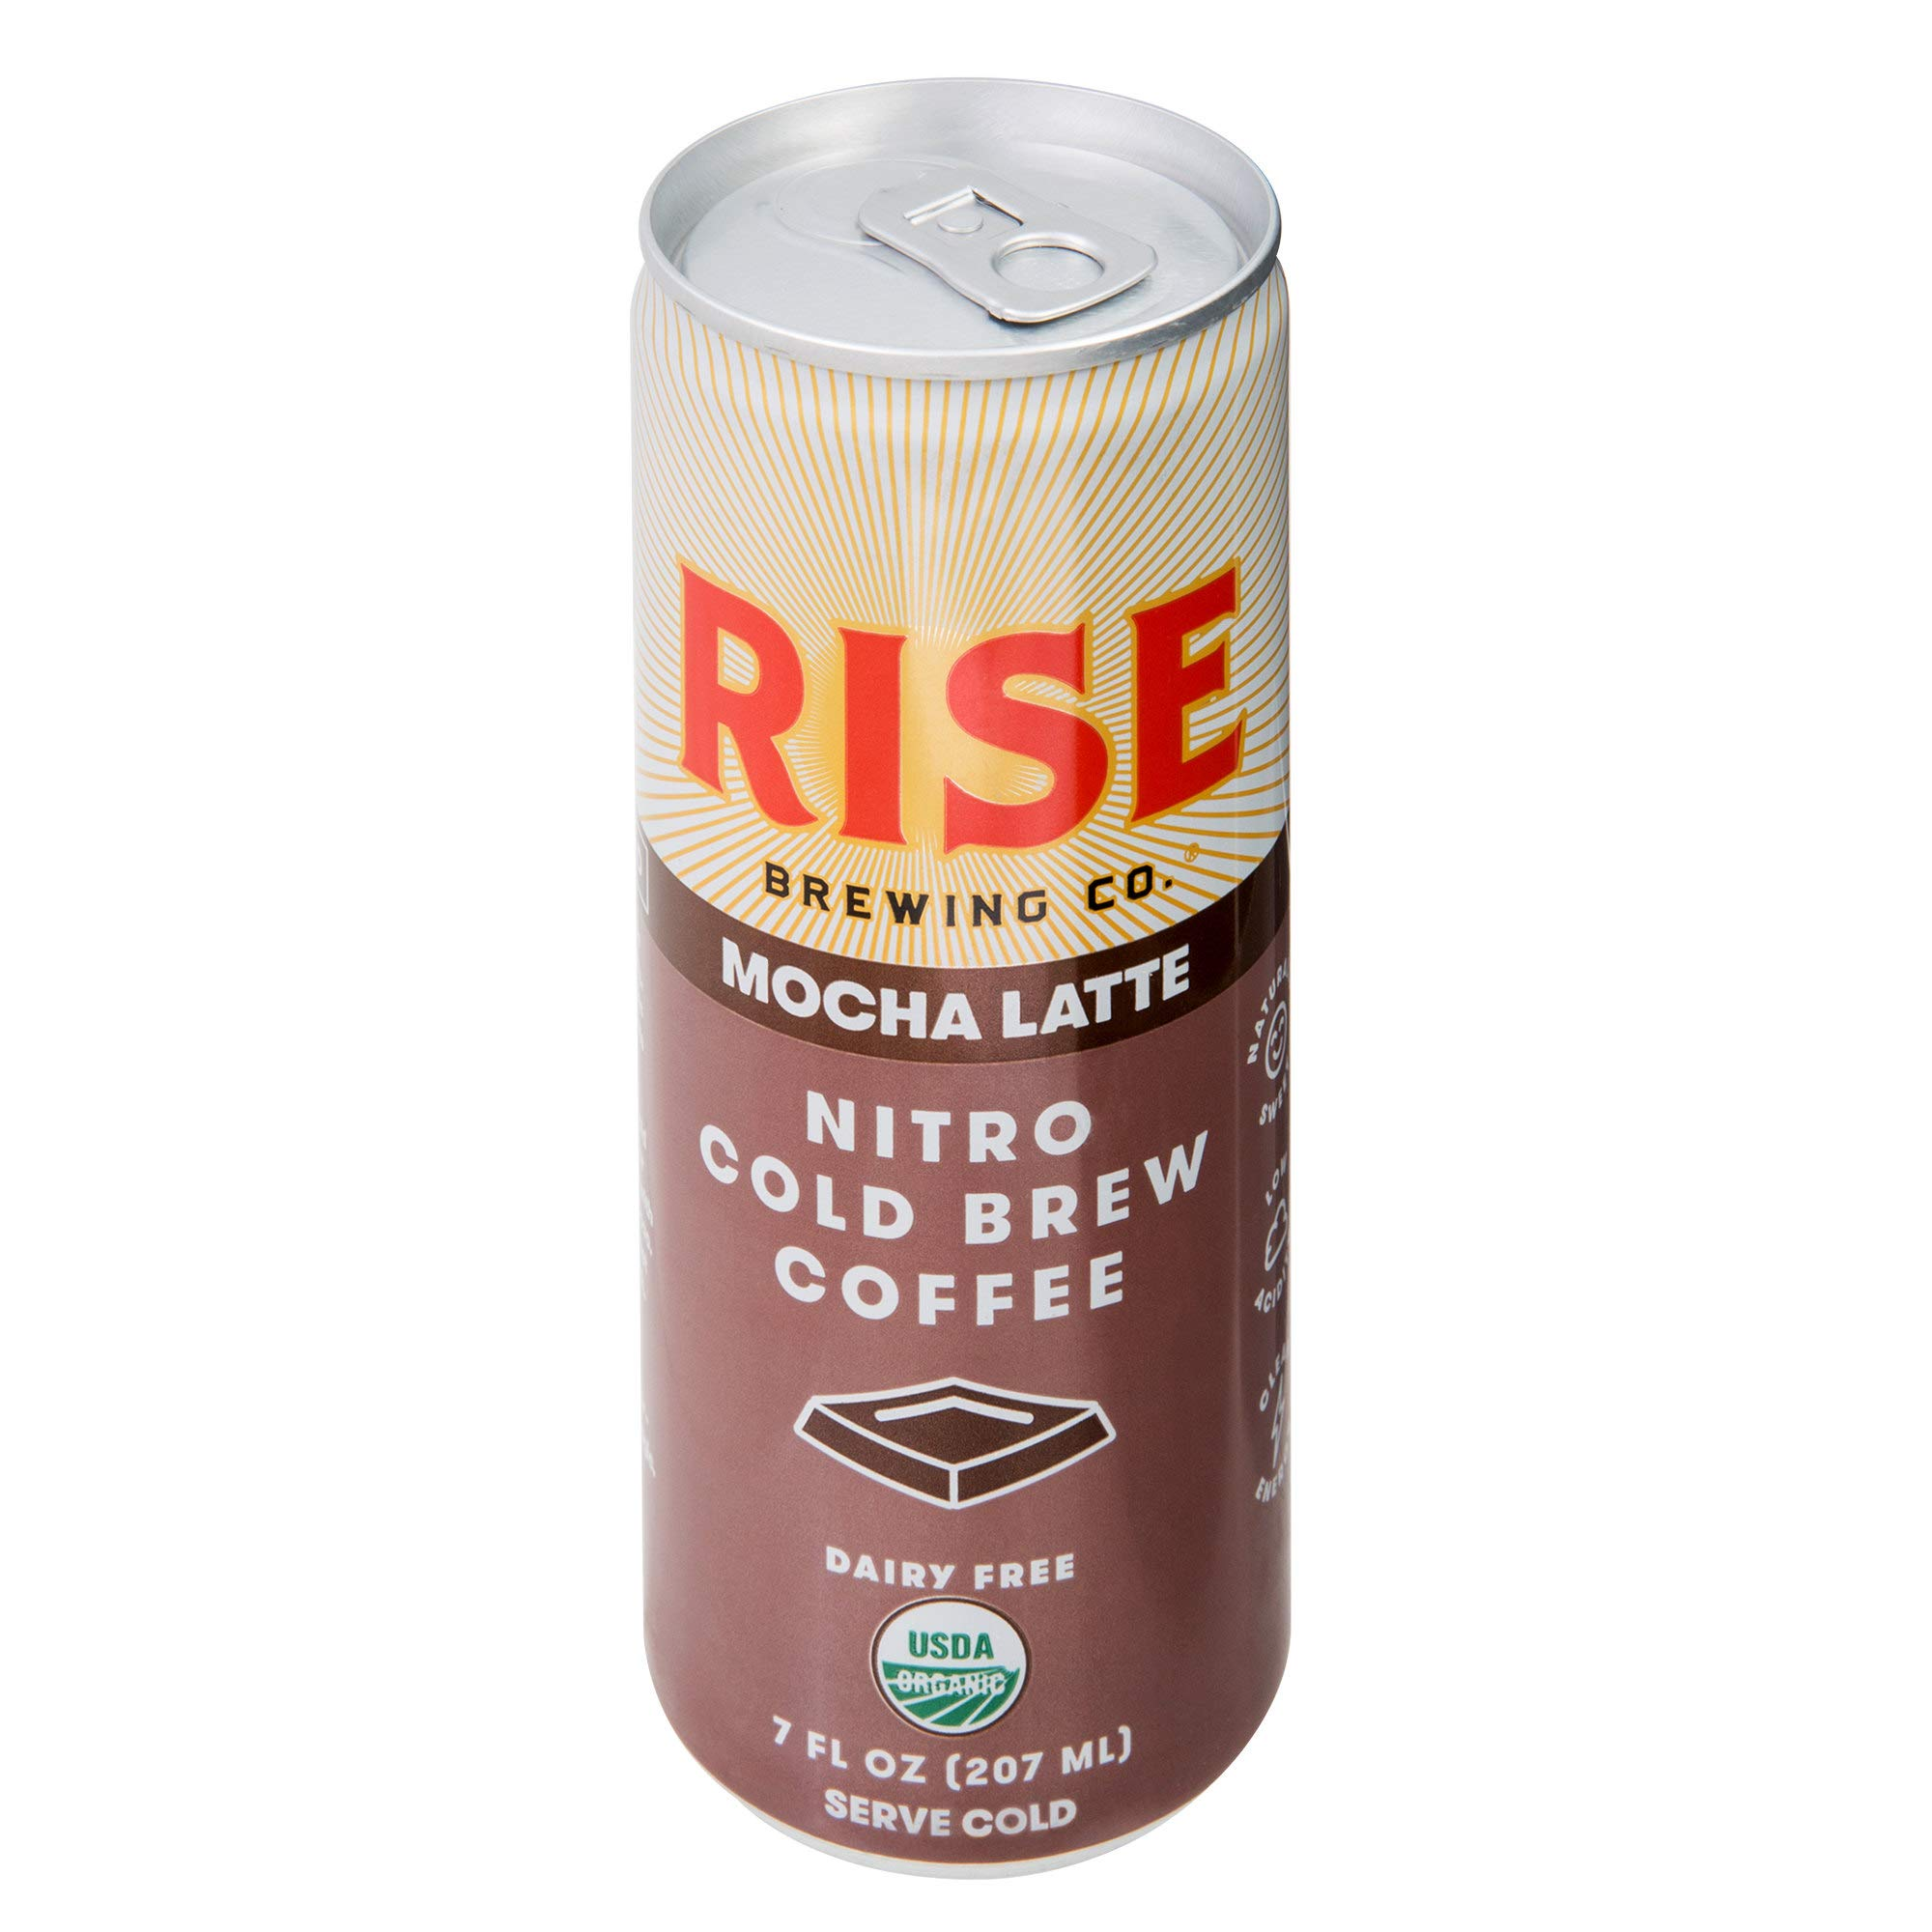 TableTop King 7 oz. Mocha Latte Nitro Cold Brew Coffee - 12/Case by TableTop King (Image #1)